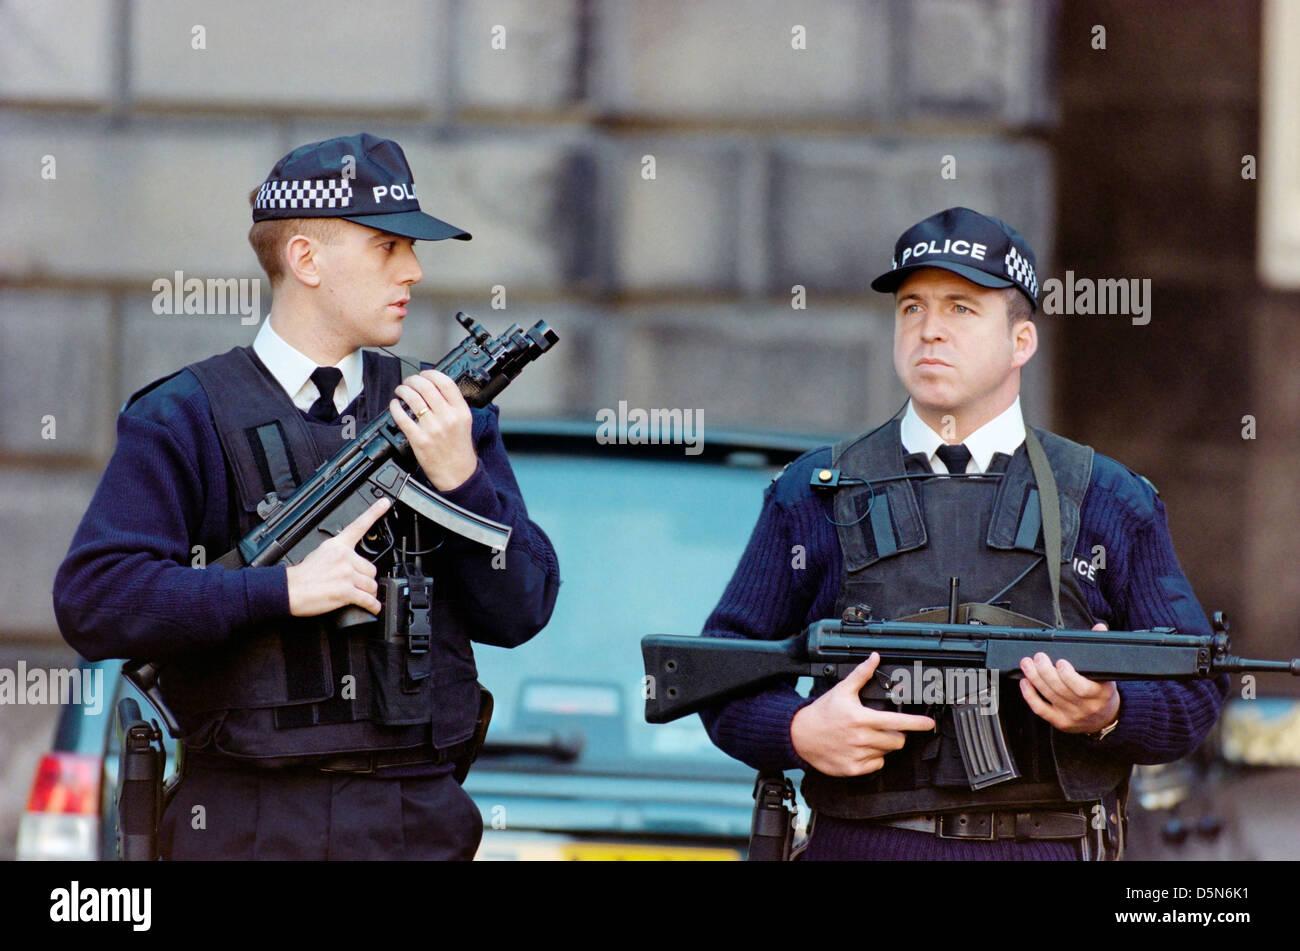 Armed police deployed outside the High Court in Edinburgh - Stock Image